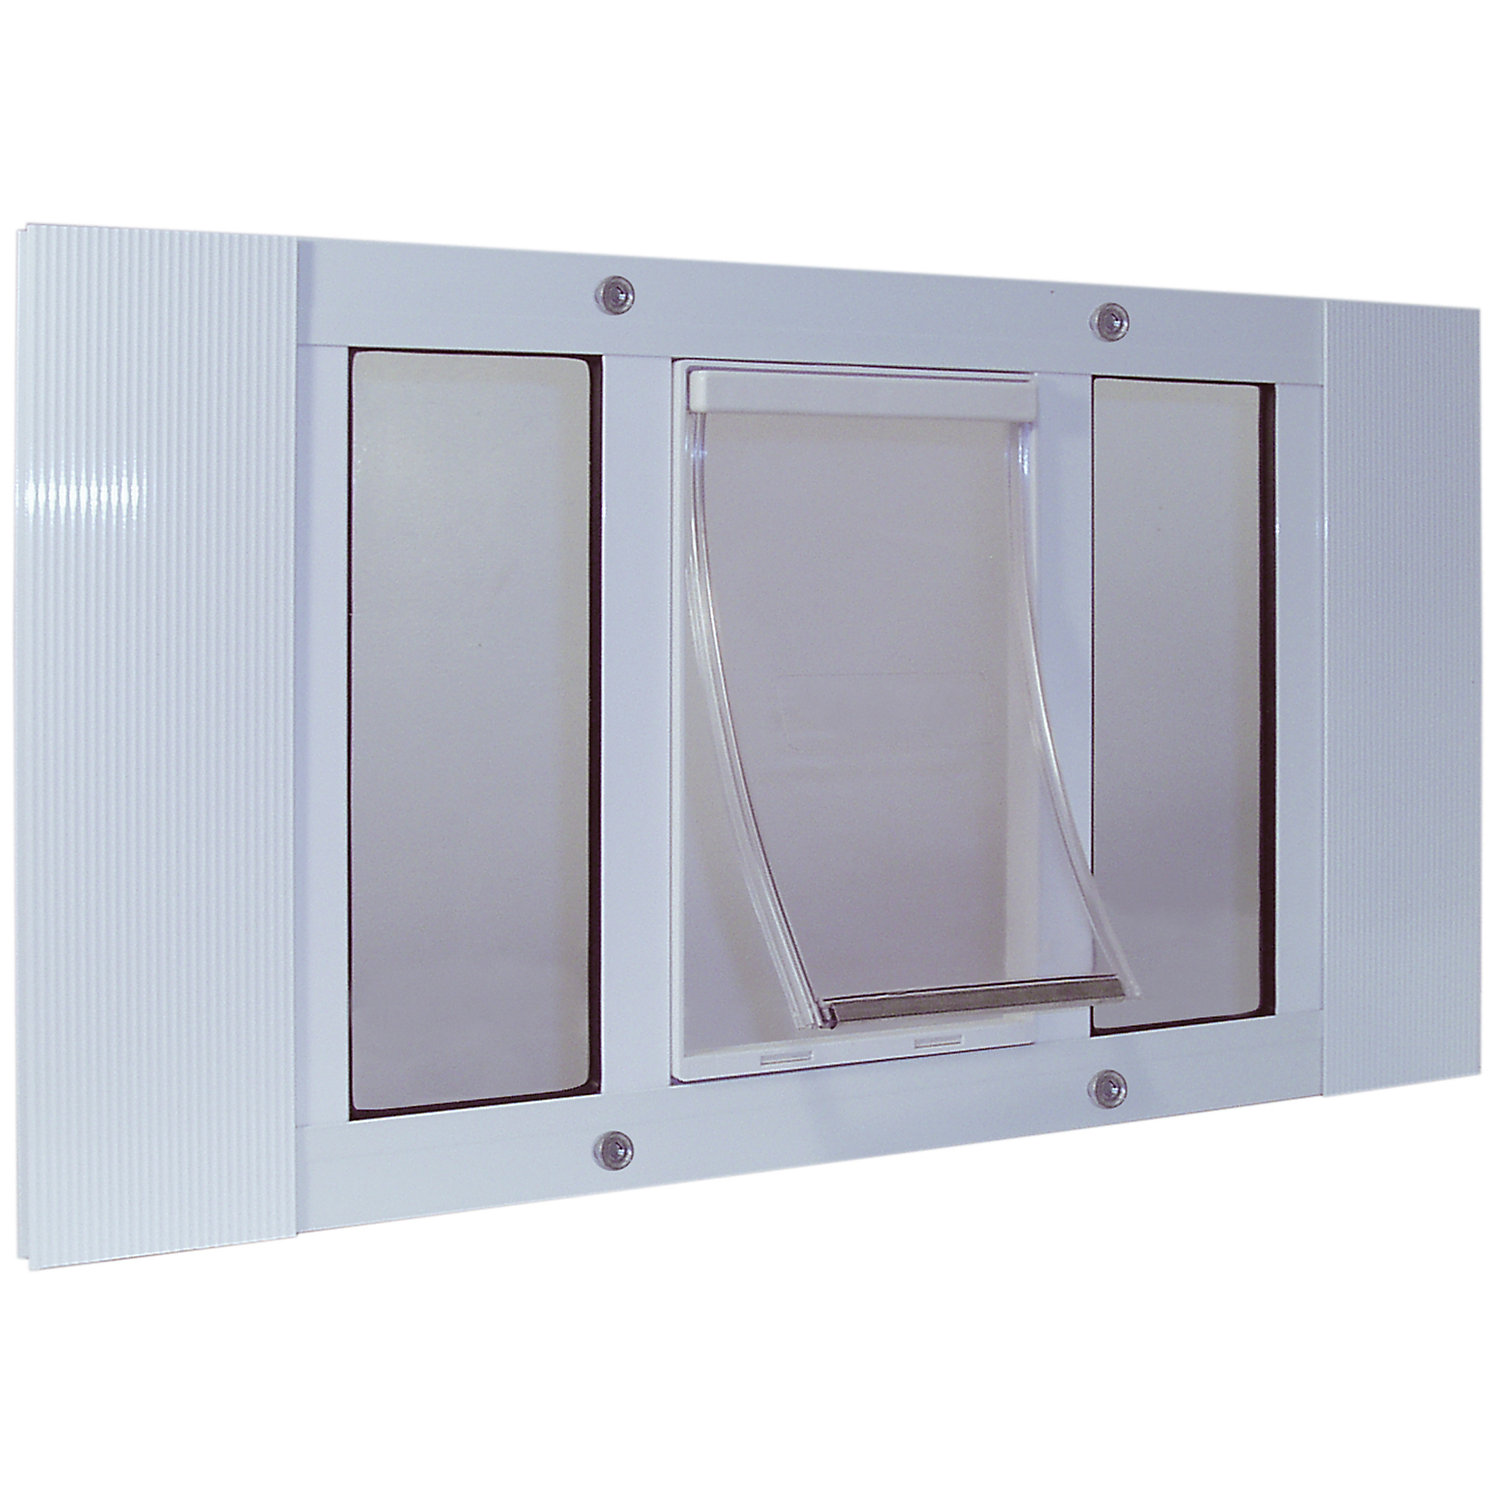 Perfect Pet 3338 Sash Window Pet Door in White 12.5625IN x 1.75IN x 27IN Medium